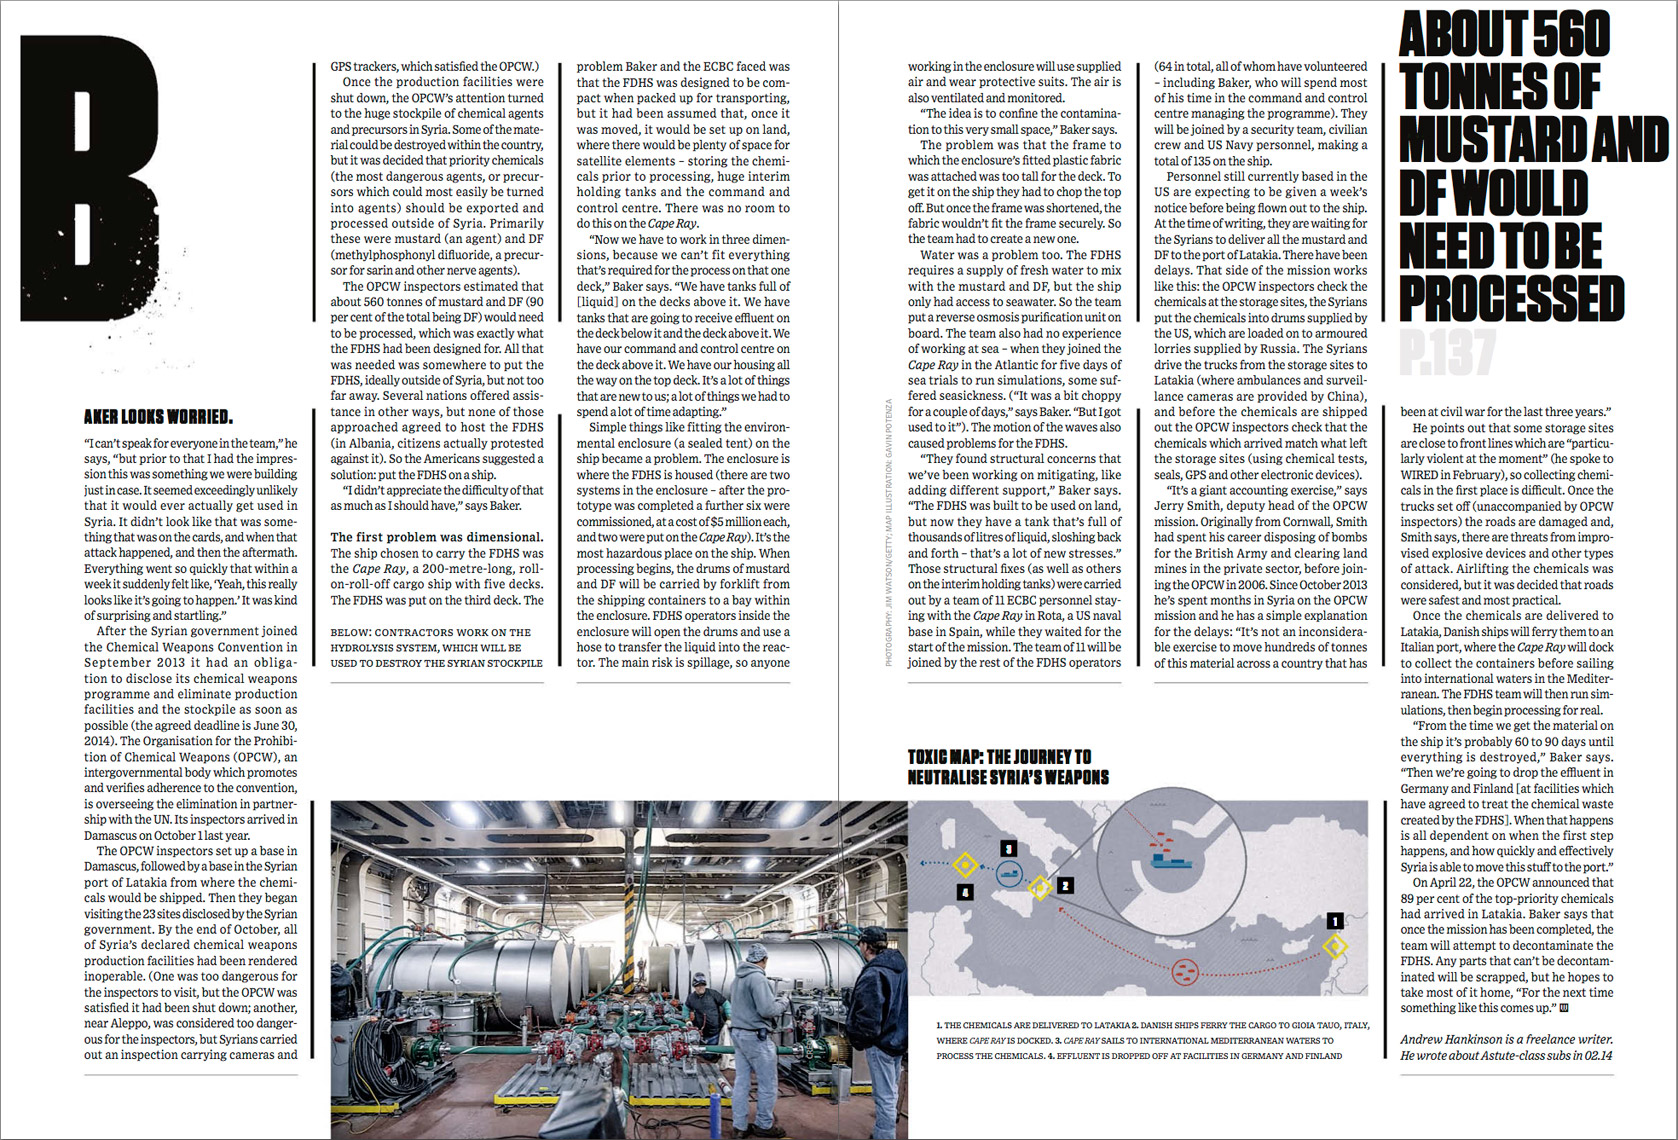 WIRED_UK_July2014_The_Ship_That_Eats_Chemical_Weapons_Feature_SPREAD3